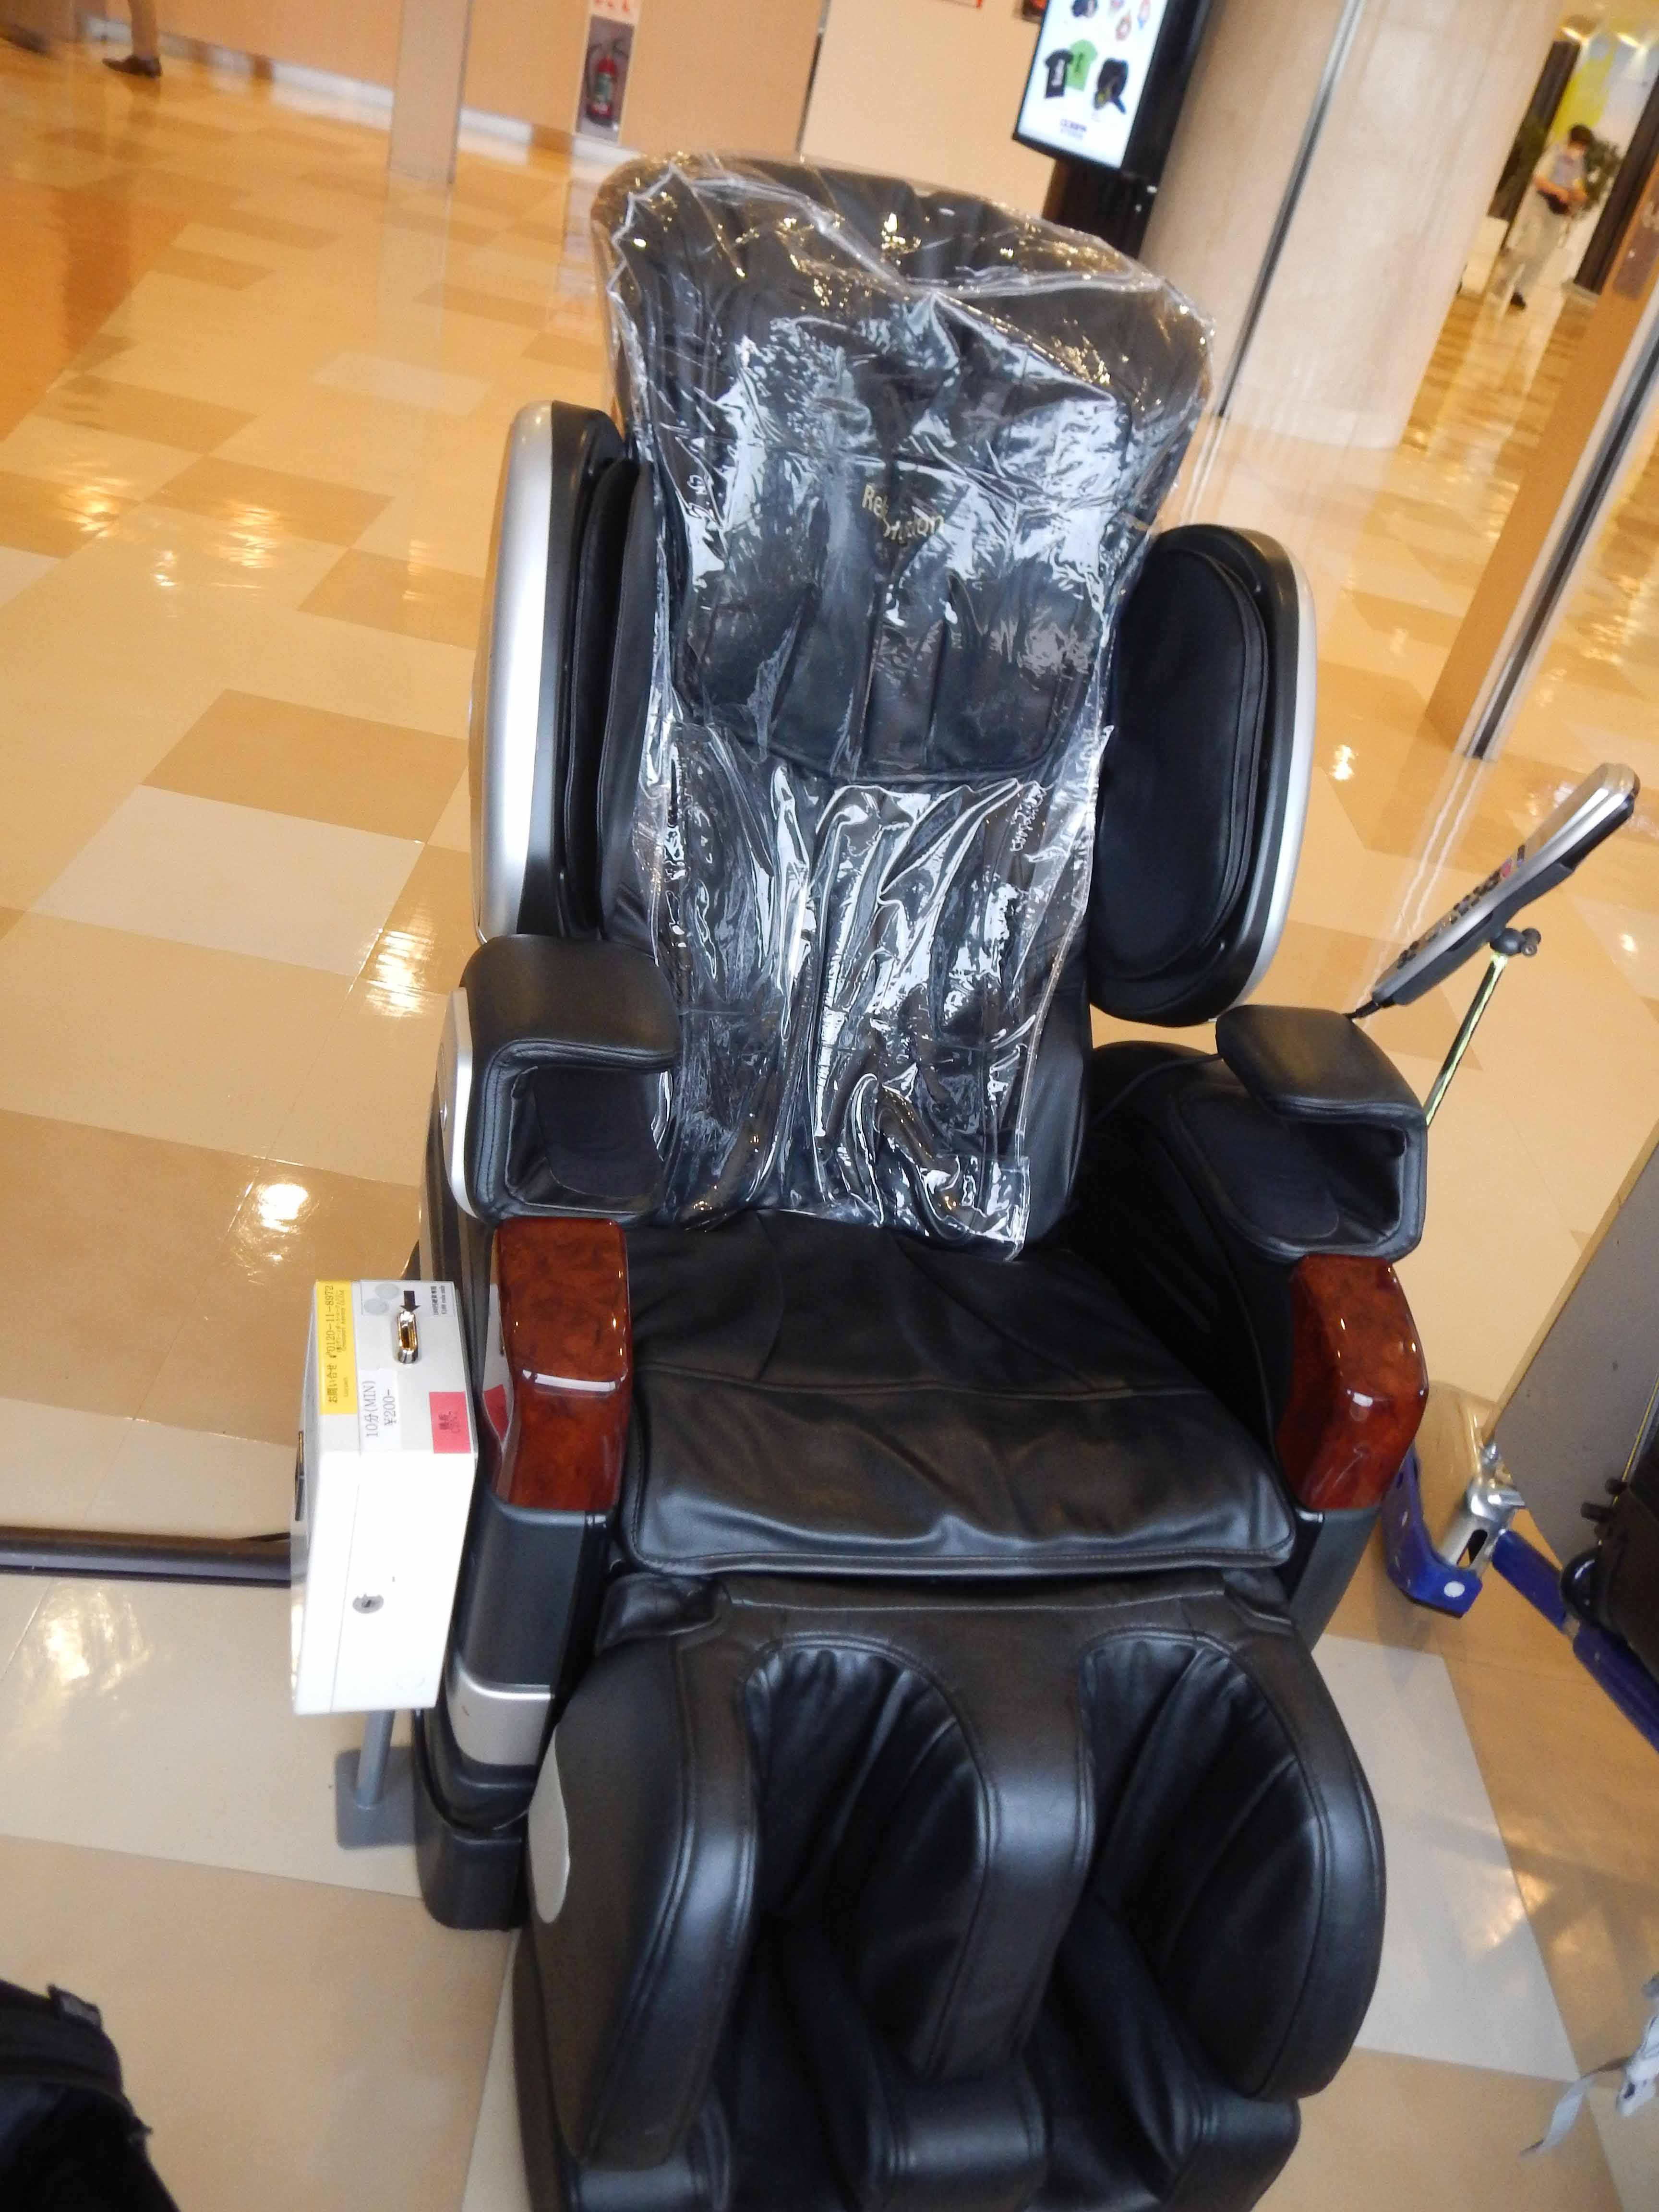 Awesome Mall Massage Chair Fresh